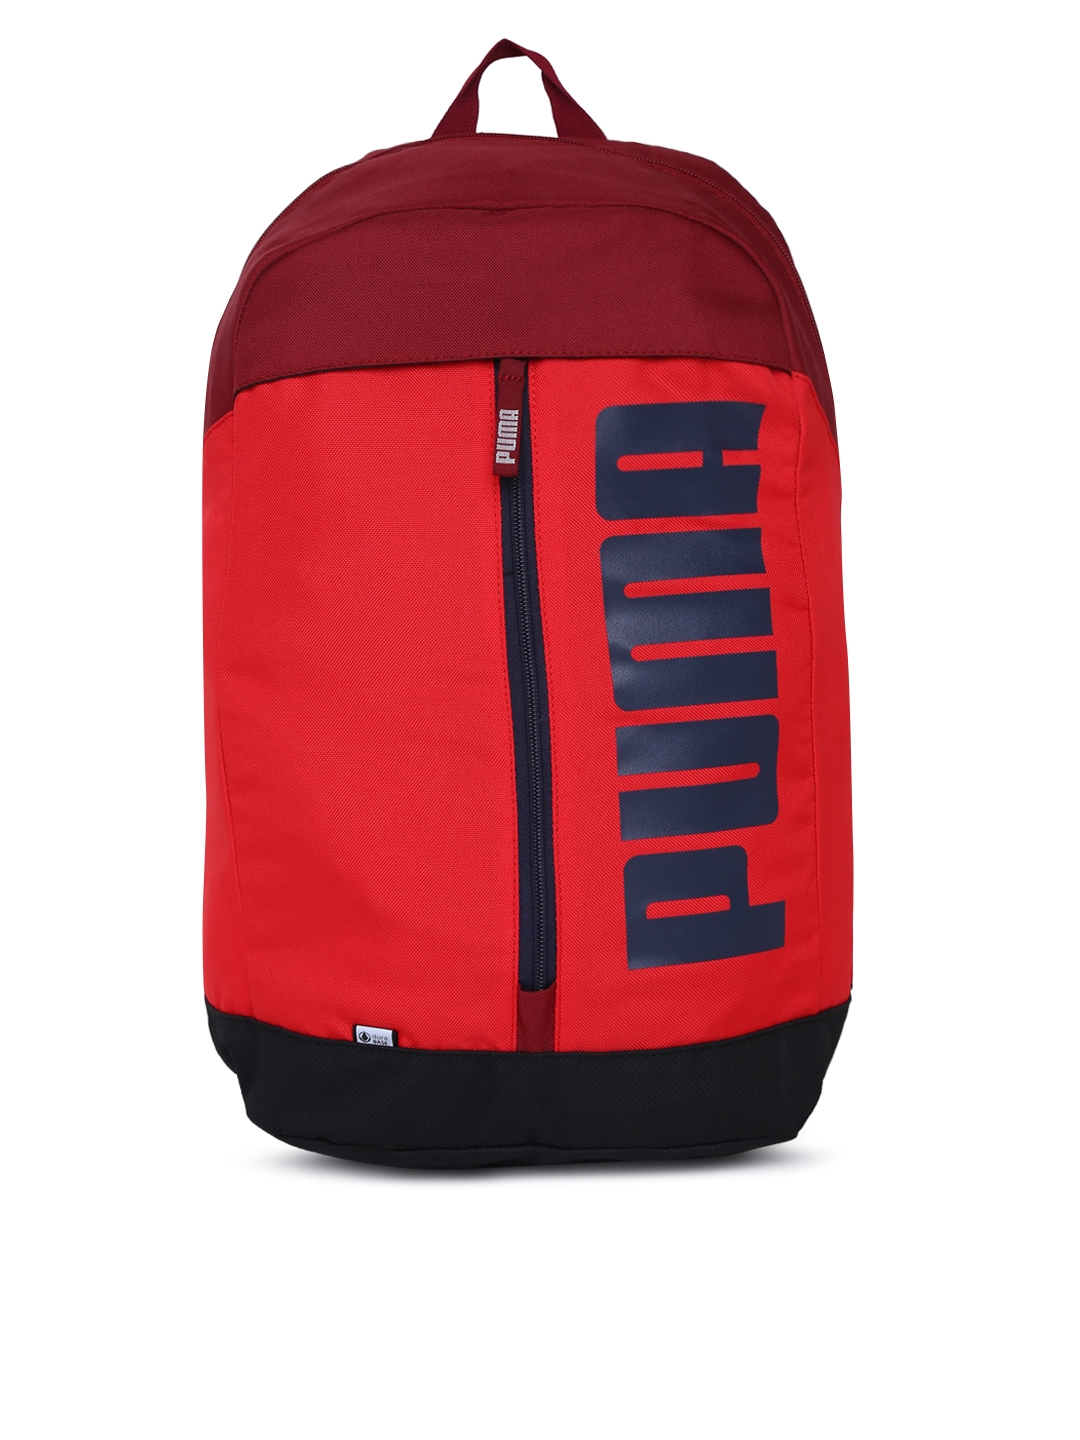 17673ef683 Buy Puma Unisex Red Brand Logo Print Pioneer Laptop Backpack ...